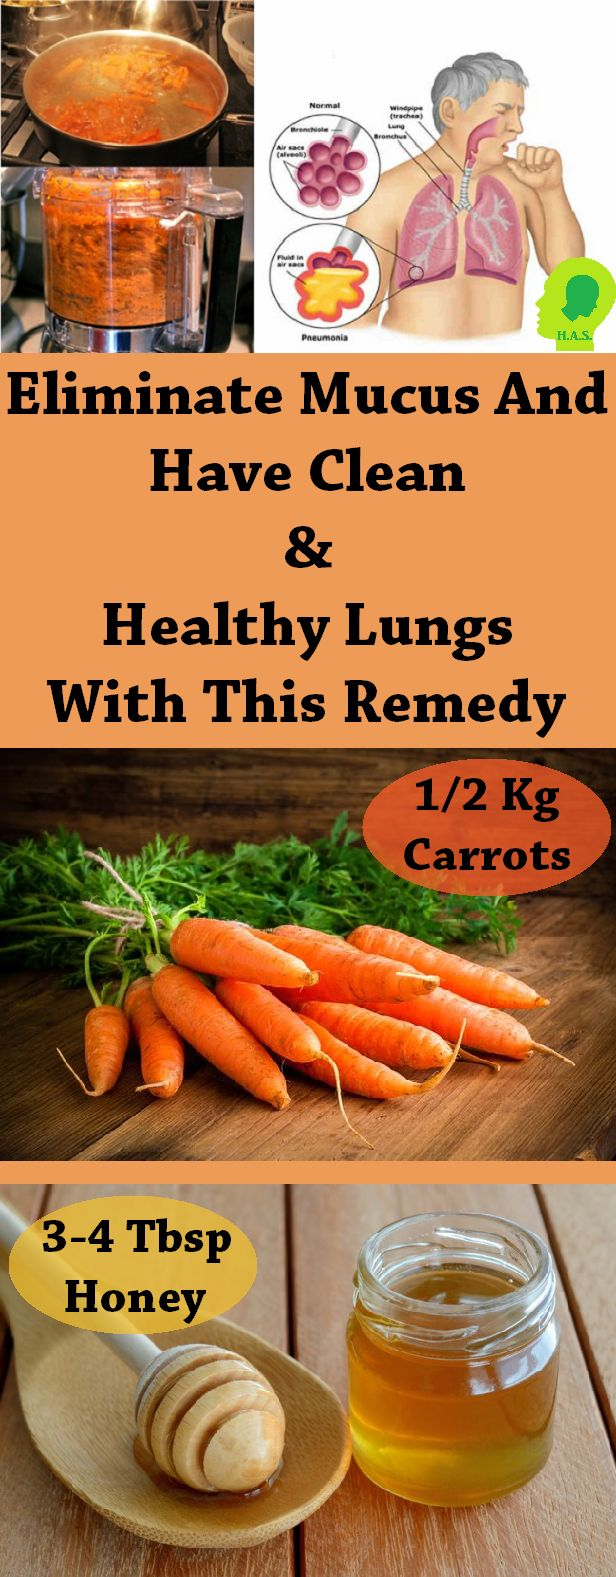 If you have a problem with mucus in your lungs, this remedy will take care of it.